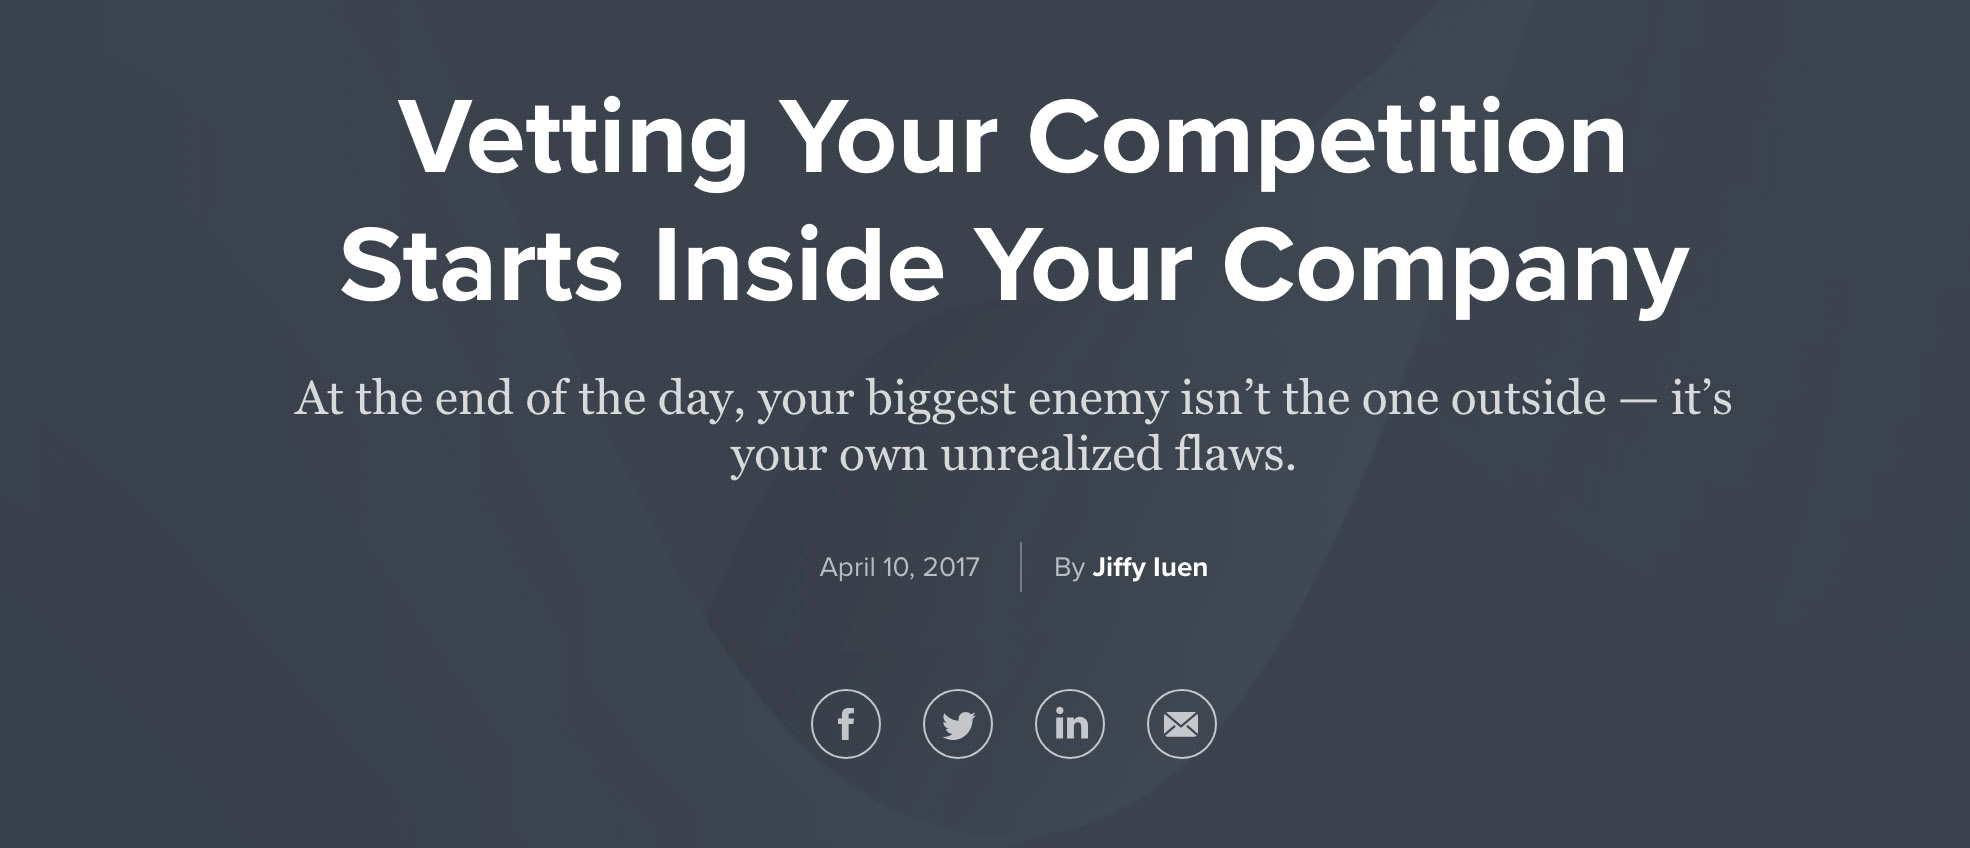 Vetting Your Competition copy